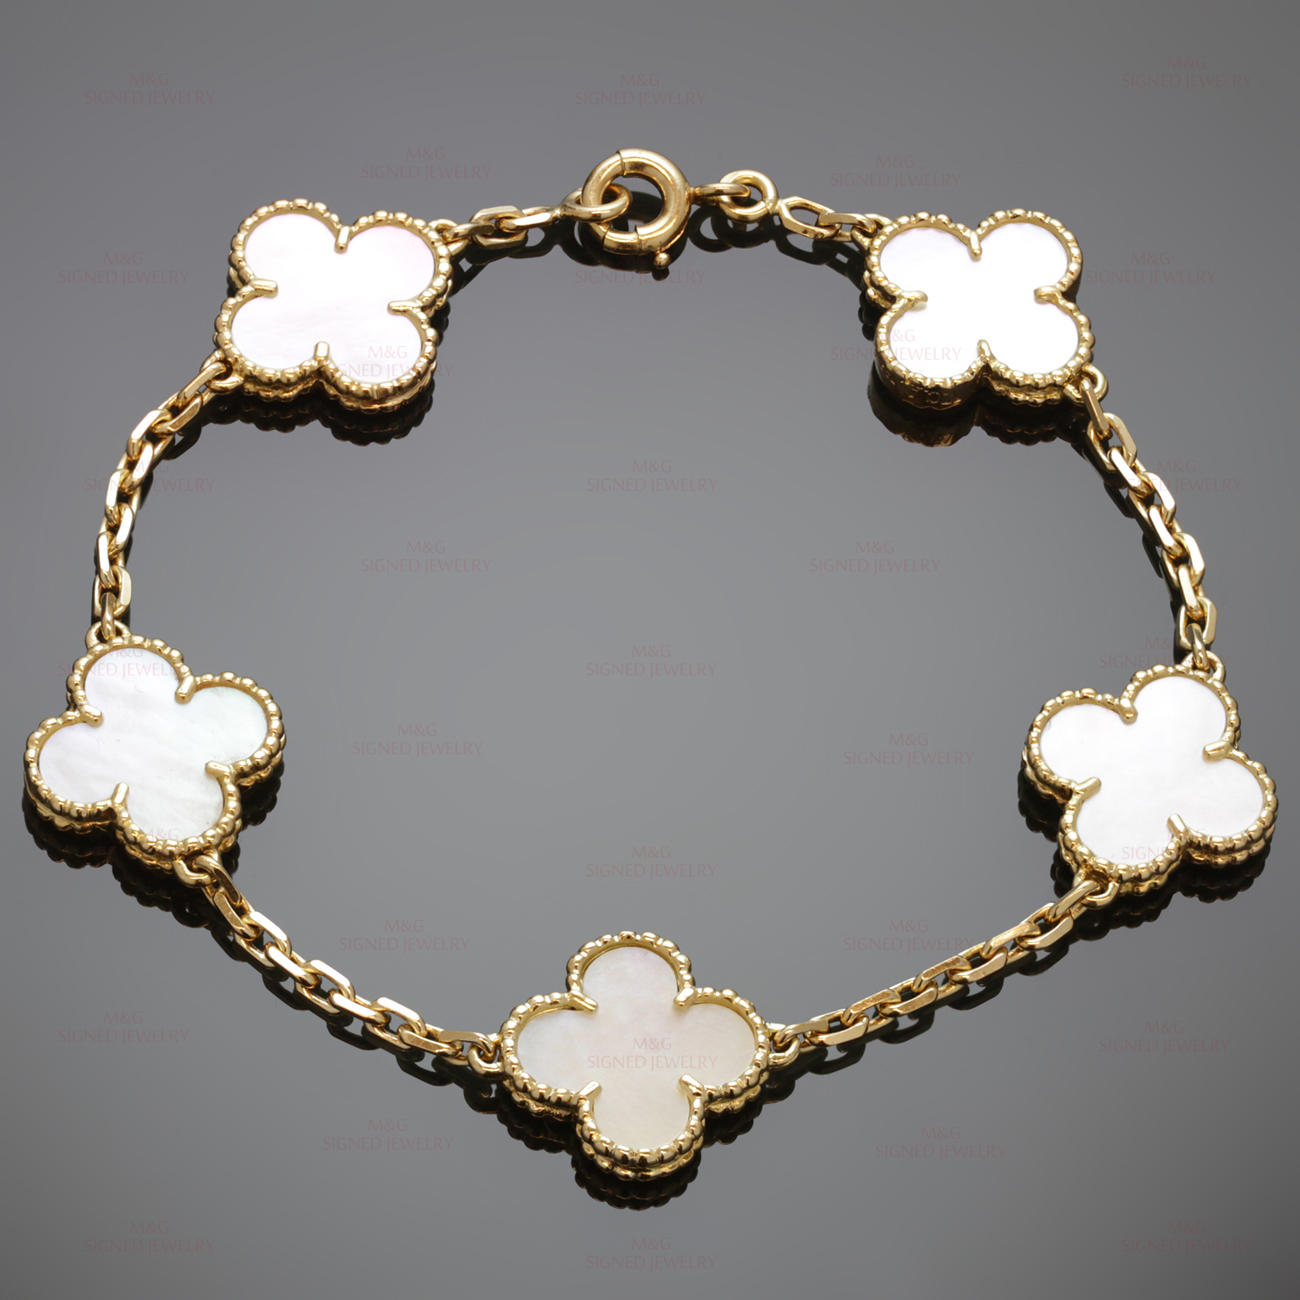 jewelry bracelet accessories alhambra vintage